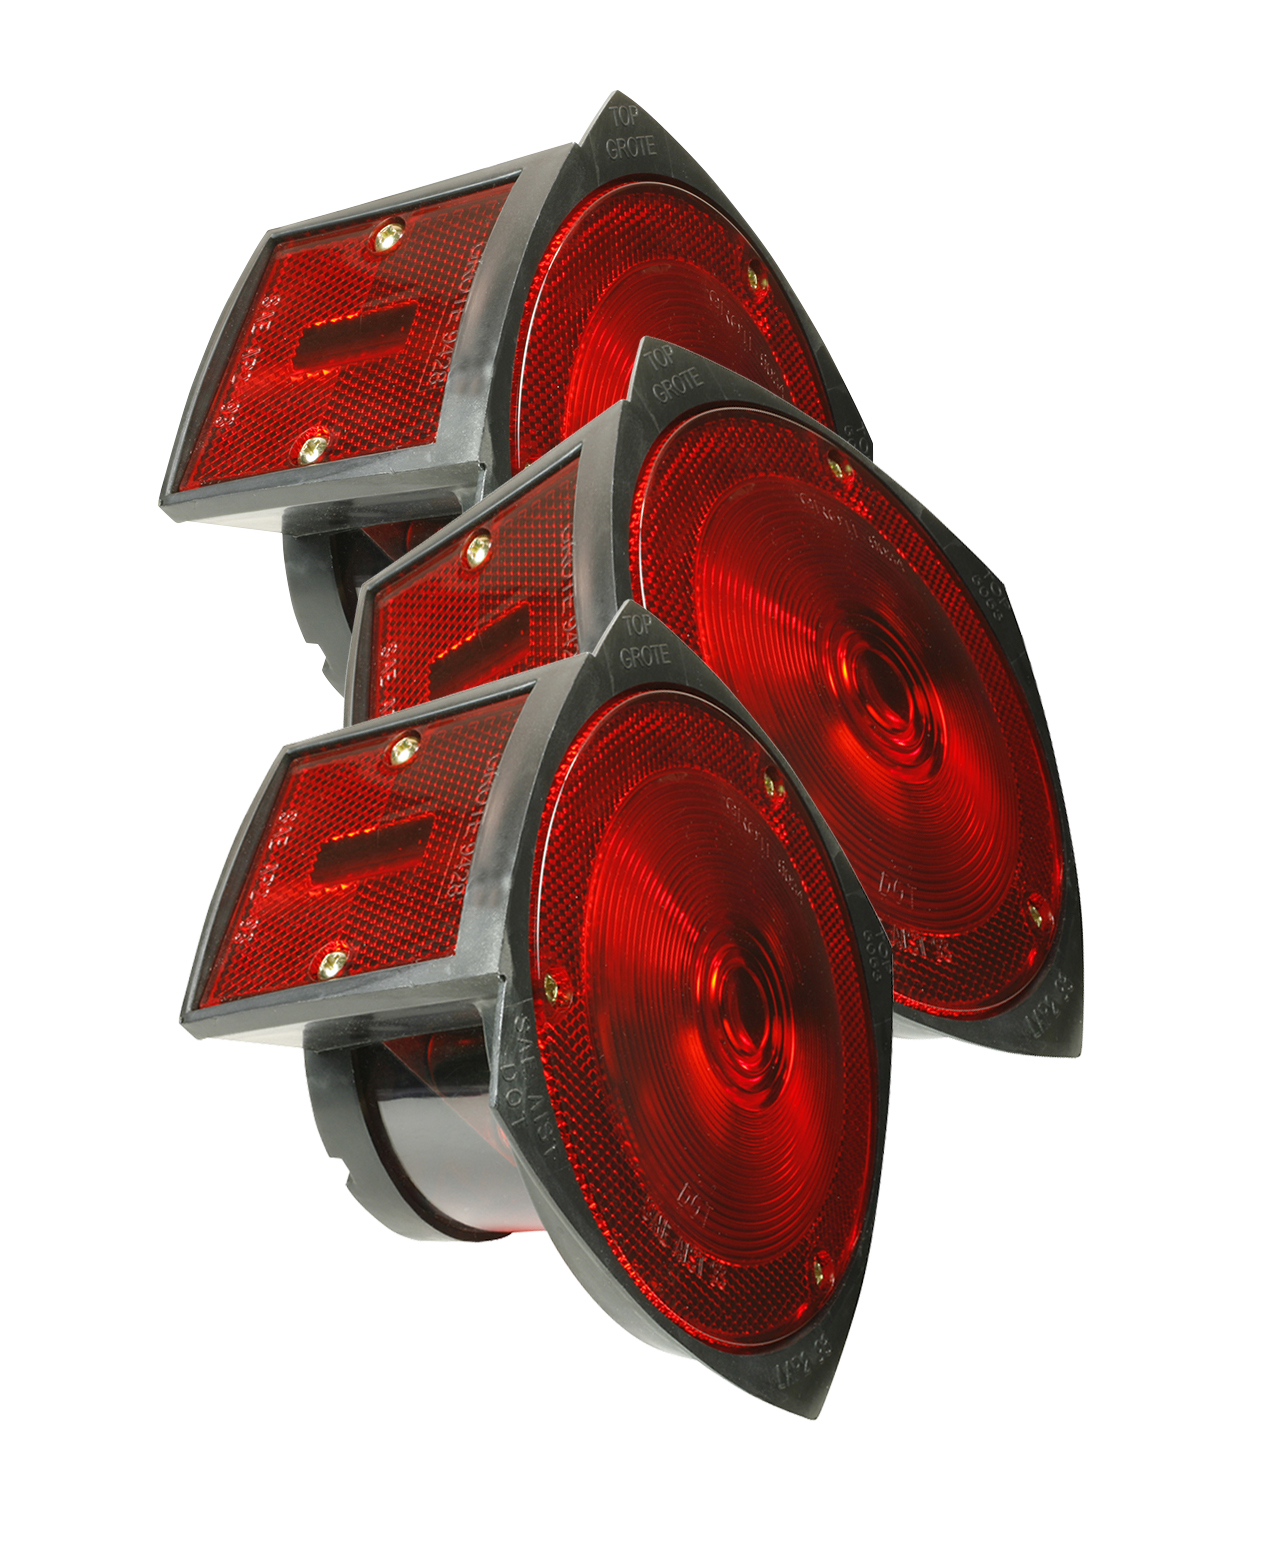 50532-3 – Trailer Lighting Kit with Side Marker Light, LH Stop Tail Turn Light Replacement, Red, Bulk Pack